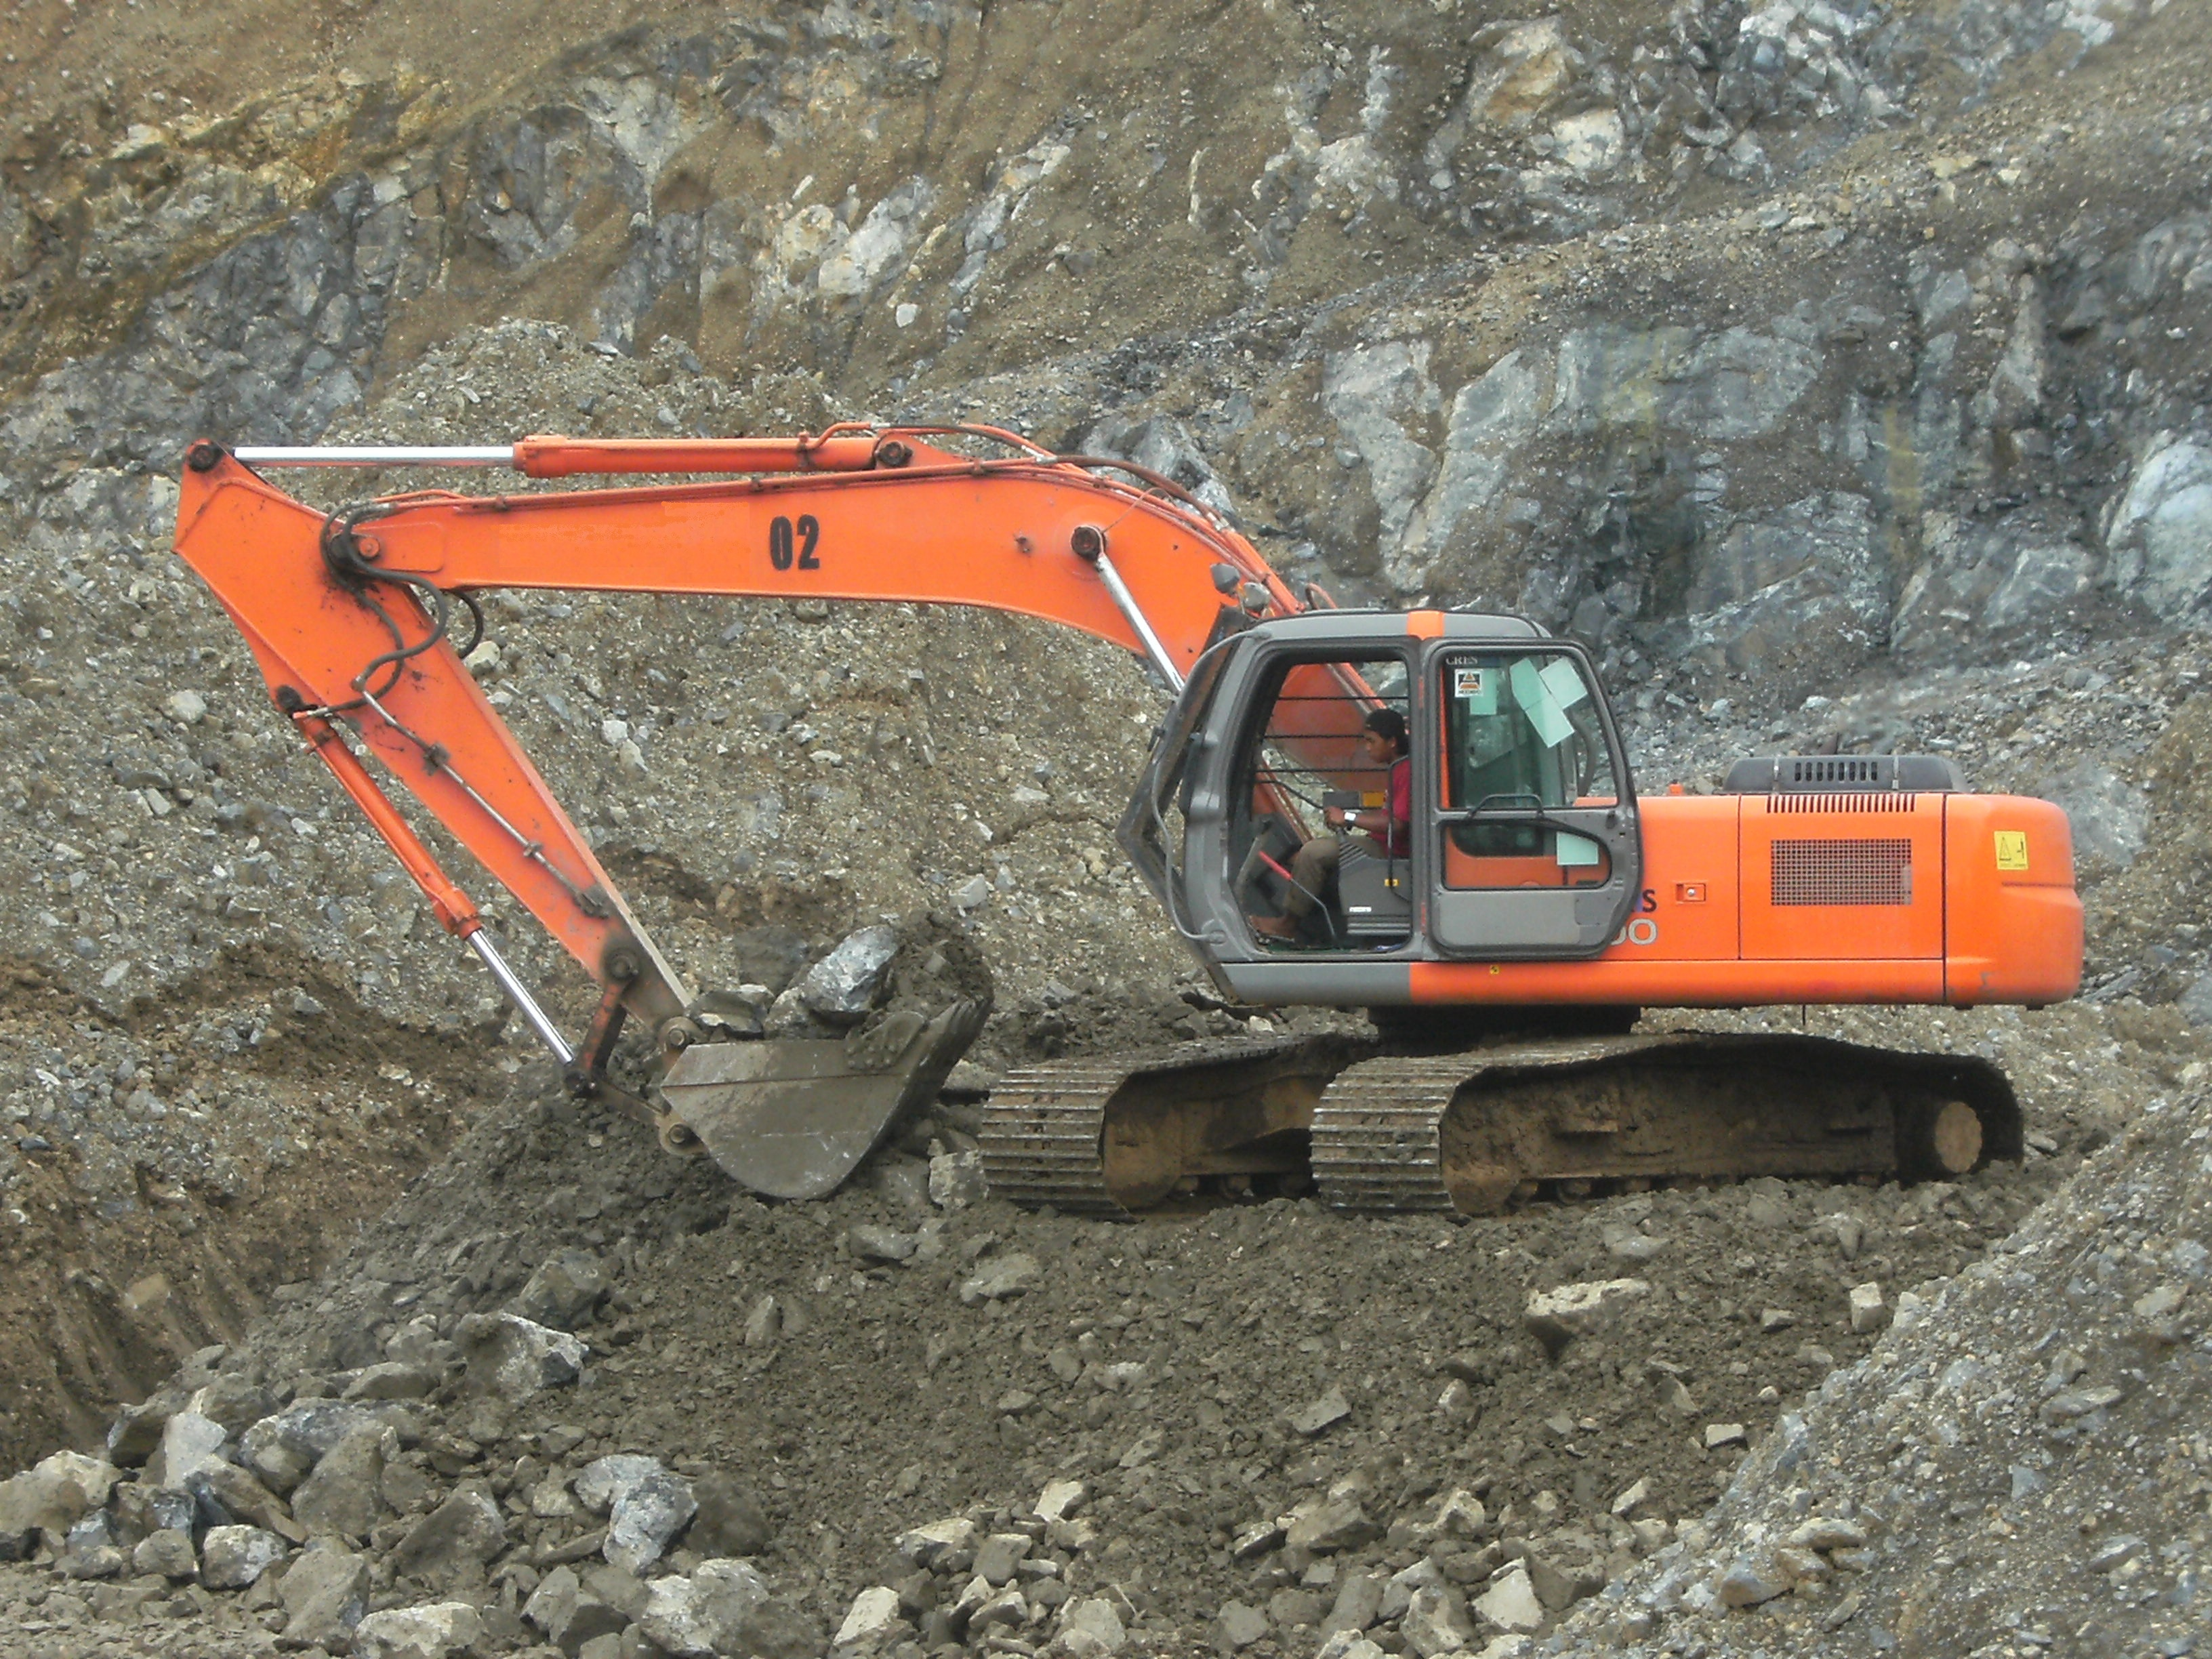 Excavator, Crusher, Digger, Industrial, Mining, HQ Photo